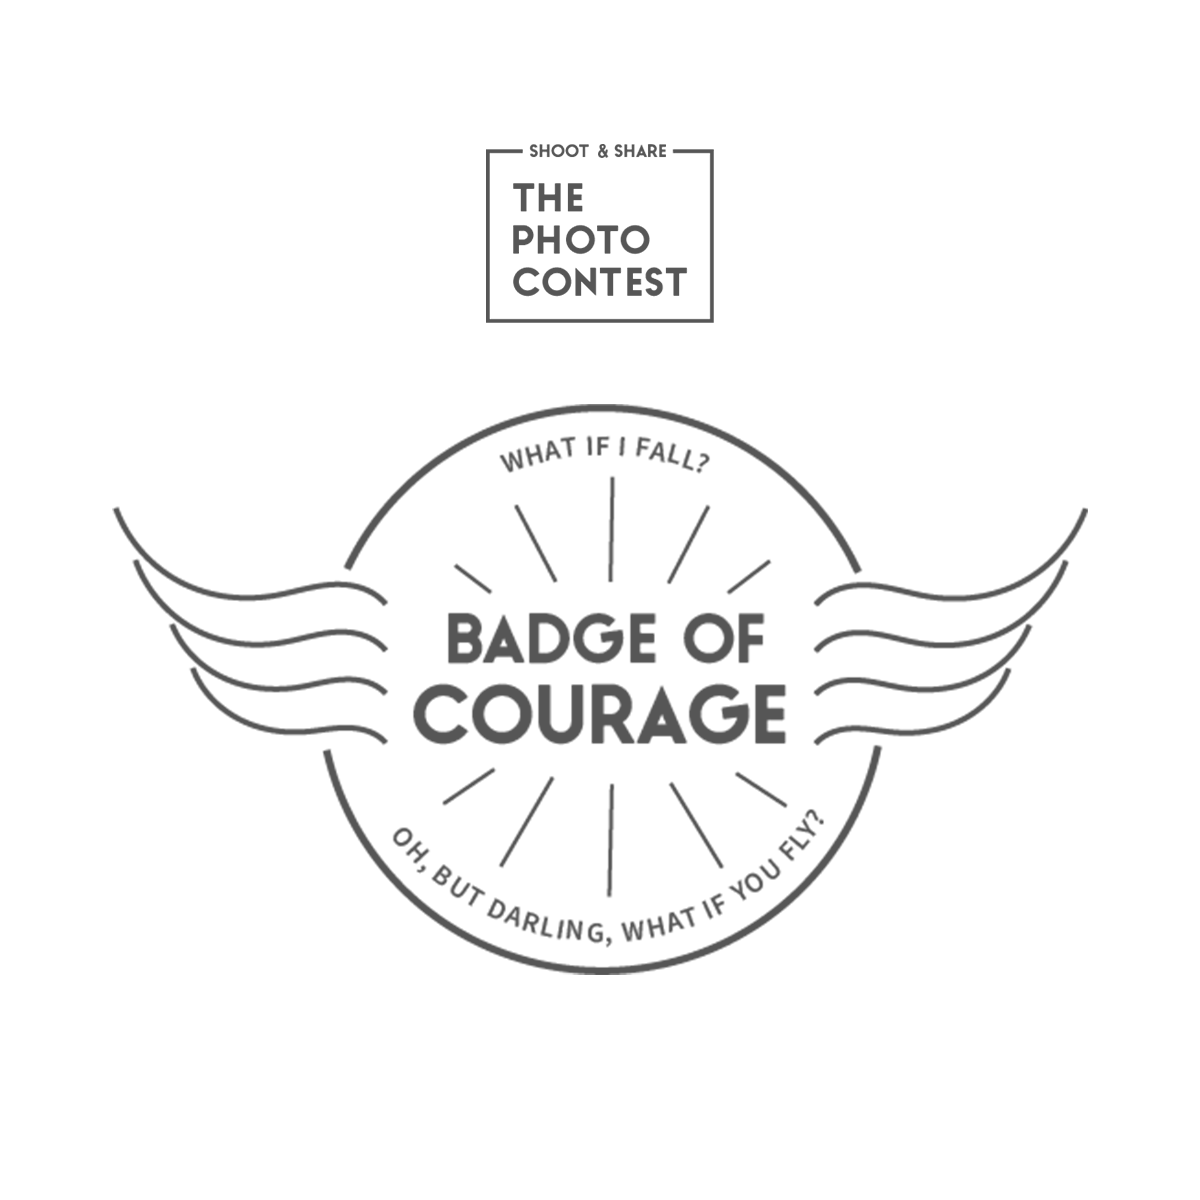 Lucky Sparrows - Award-Winning Wedding Photographers - Shoot & Share Badge Of Courage